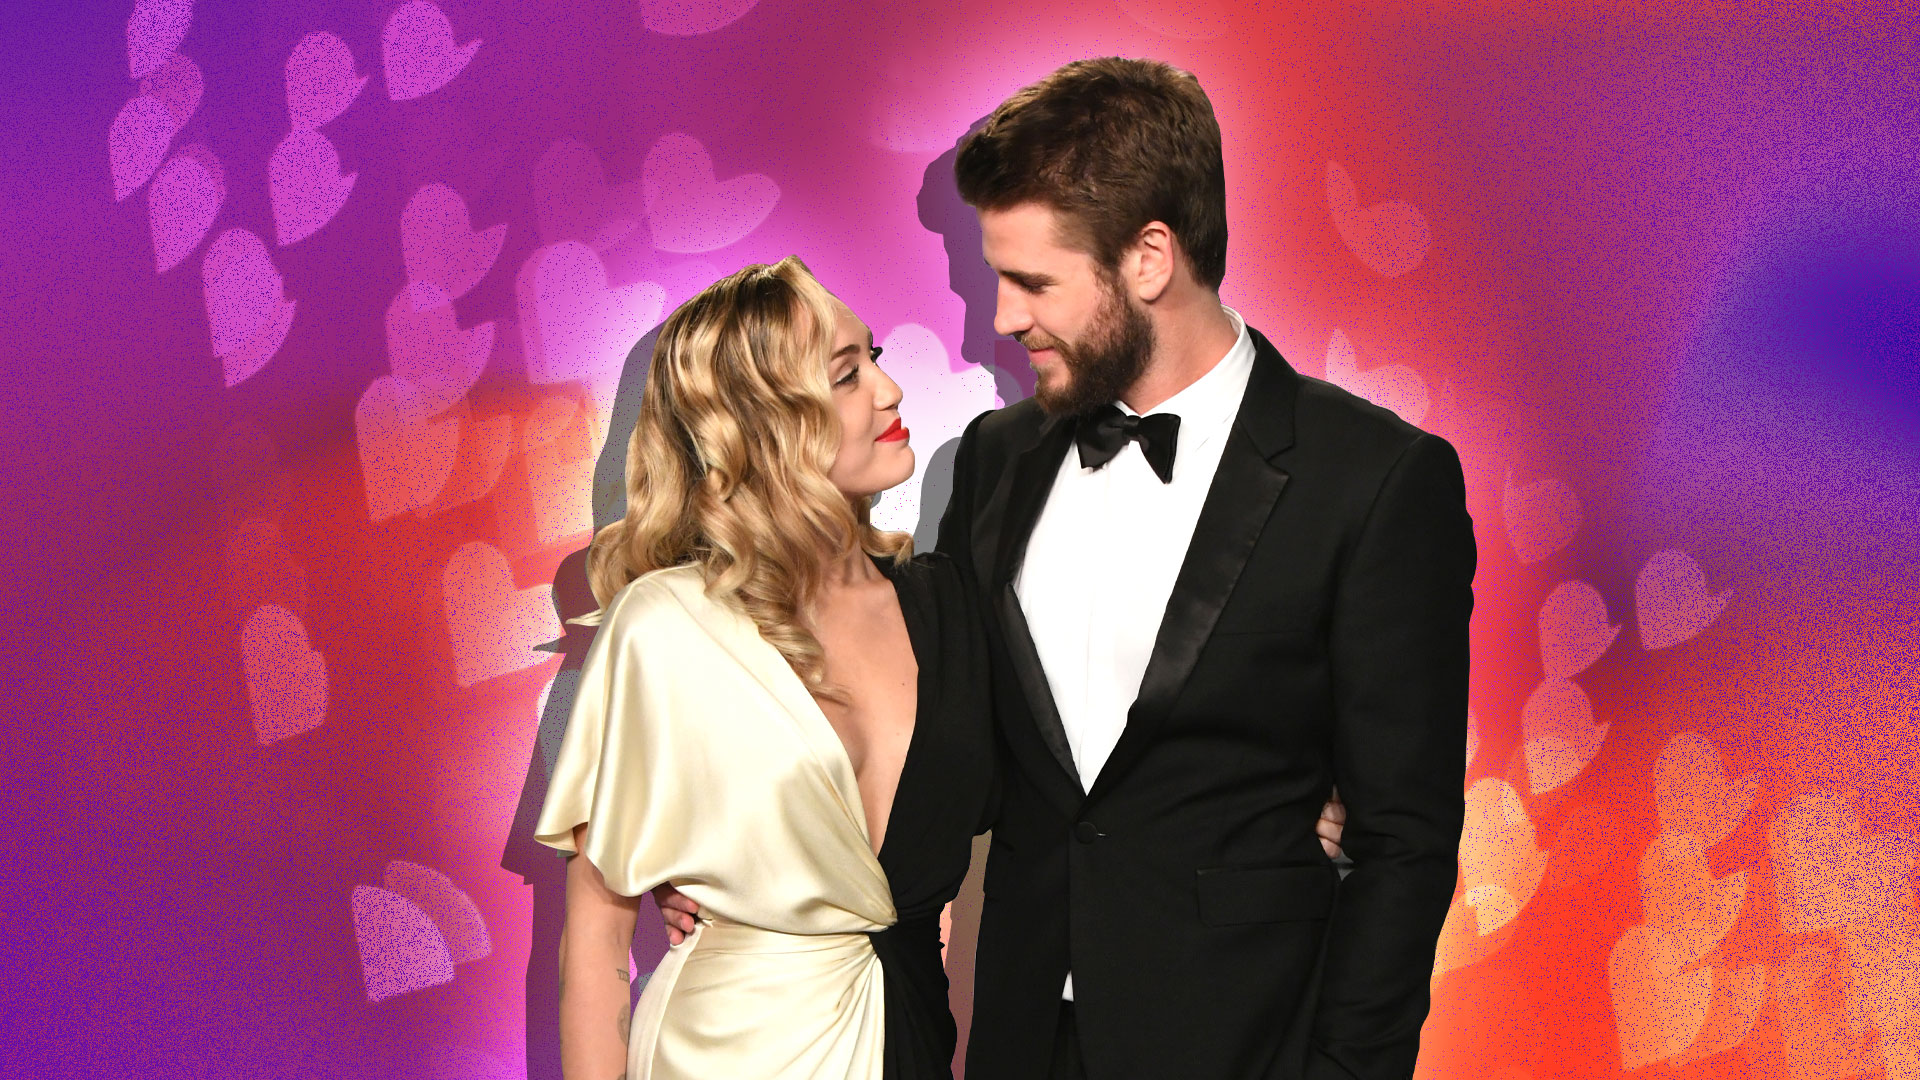 STYLECASTER | Miley Cyrus and Liam Hemsworth Relationship Timeline